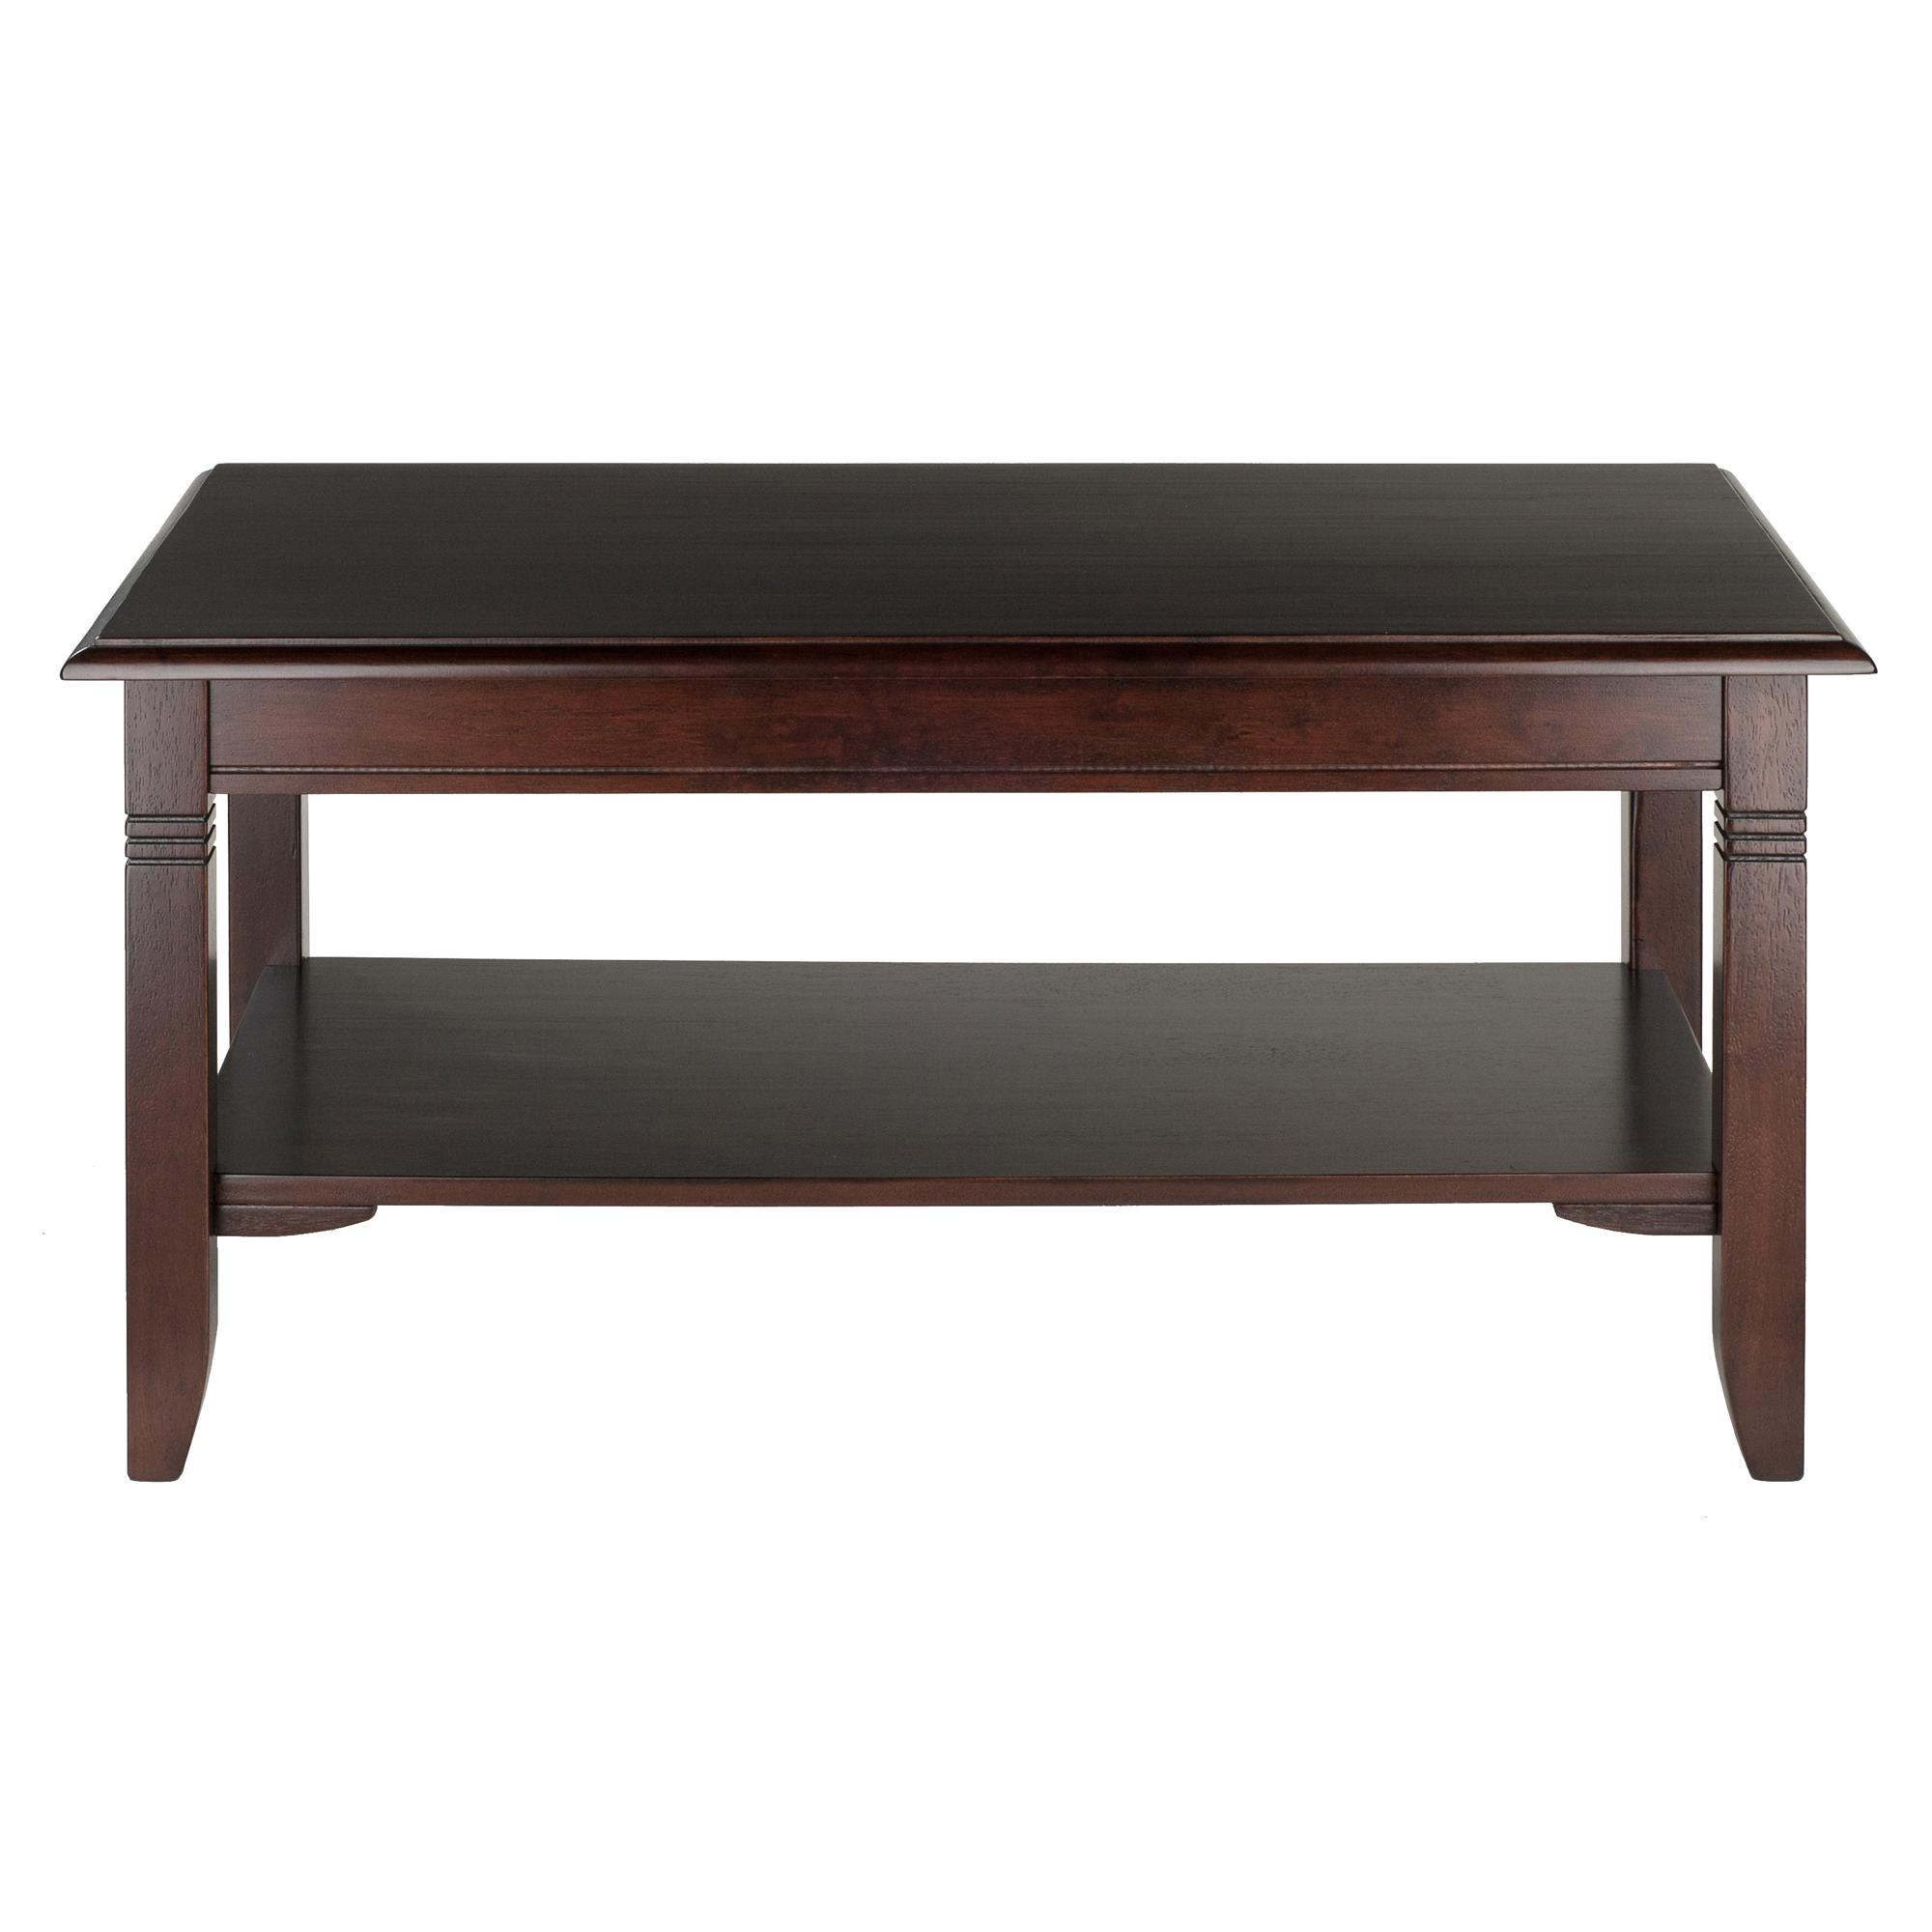 Amazon.com: Winsome Wood Nolan Coffee Table: Kitchen & Dining